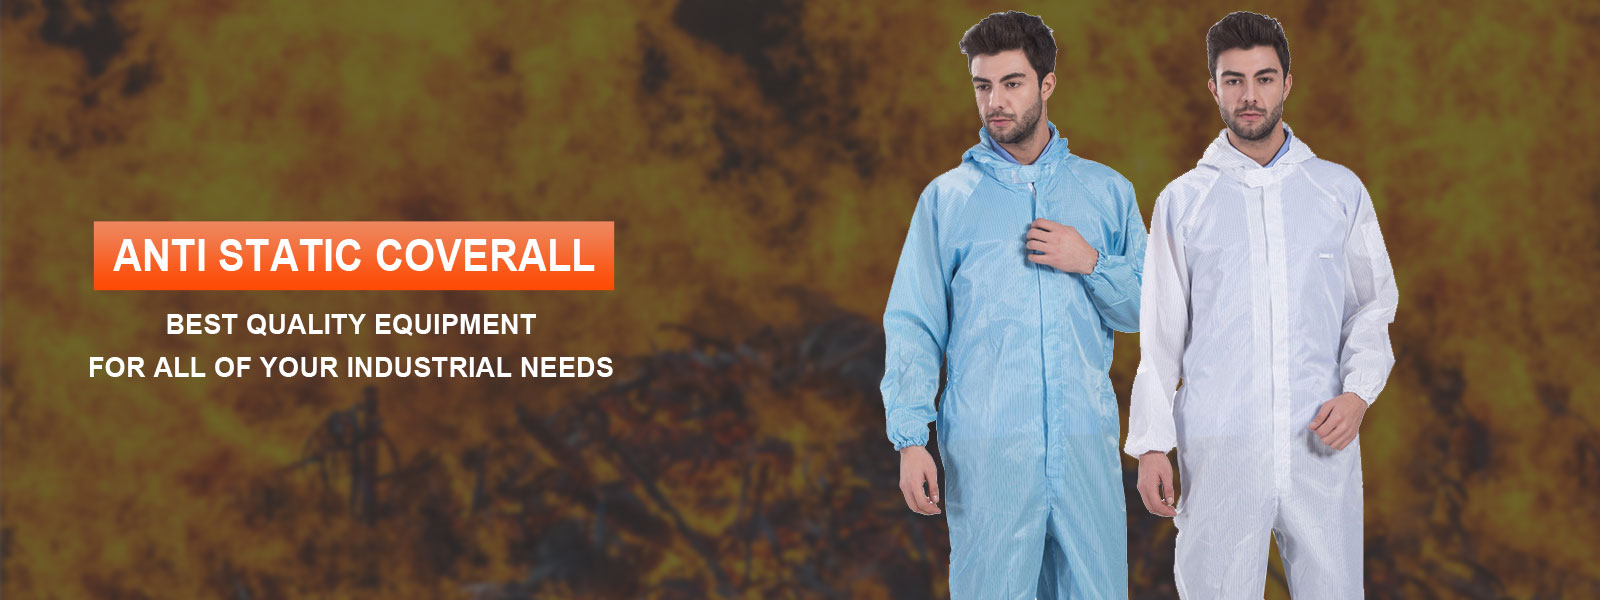 Anti Static Coverall Manufacturers in Gwalior